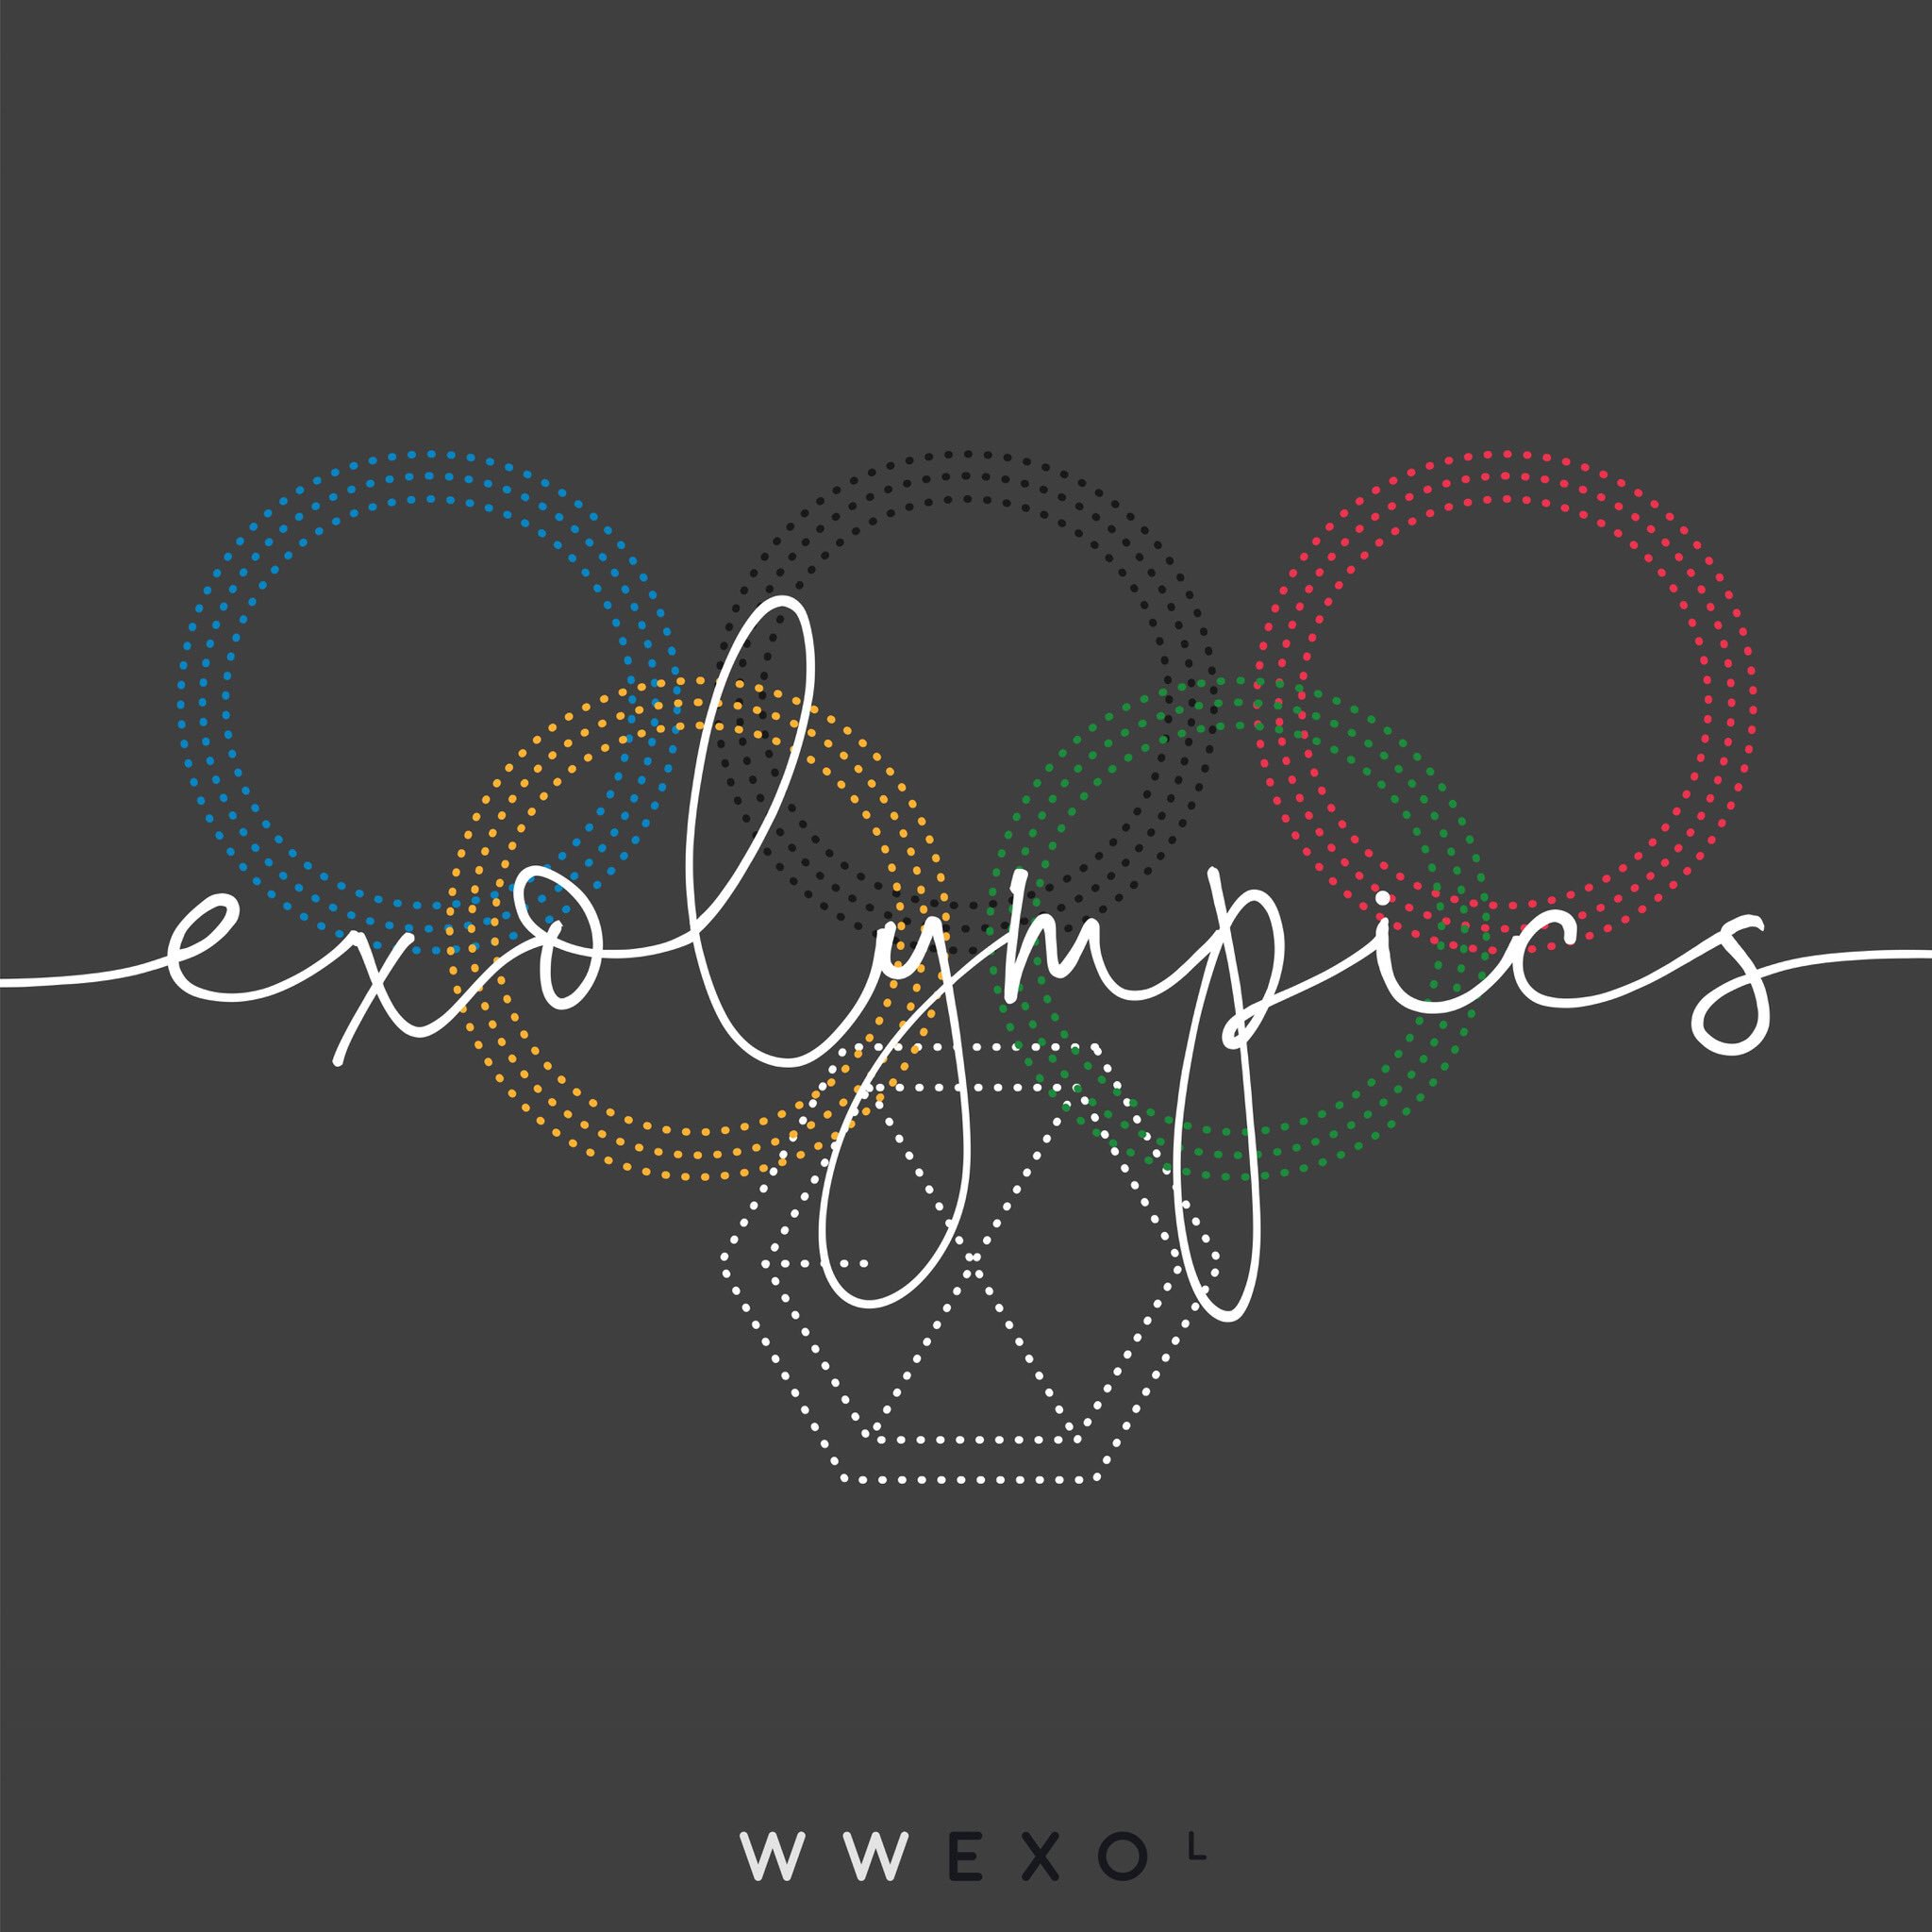 WWEXOL Fanbases' EXOlympics Logo ����  EXOLs version will get posted at 12:30 PM KST. Stay tuned!  #EXOlympicsD5 https://t.co/Ohlwco2gzQ